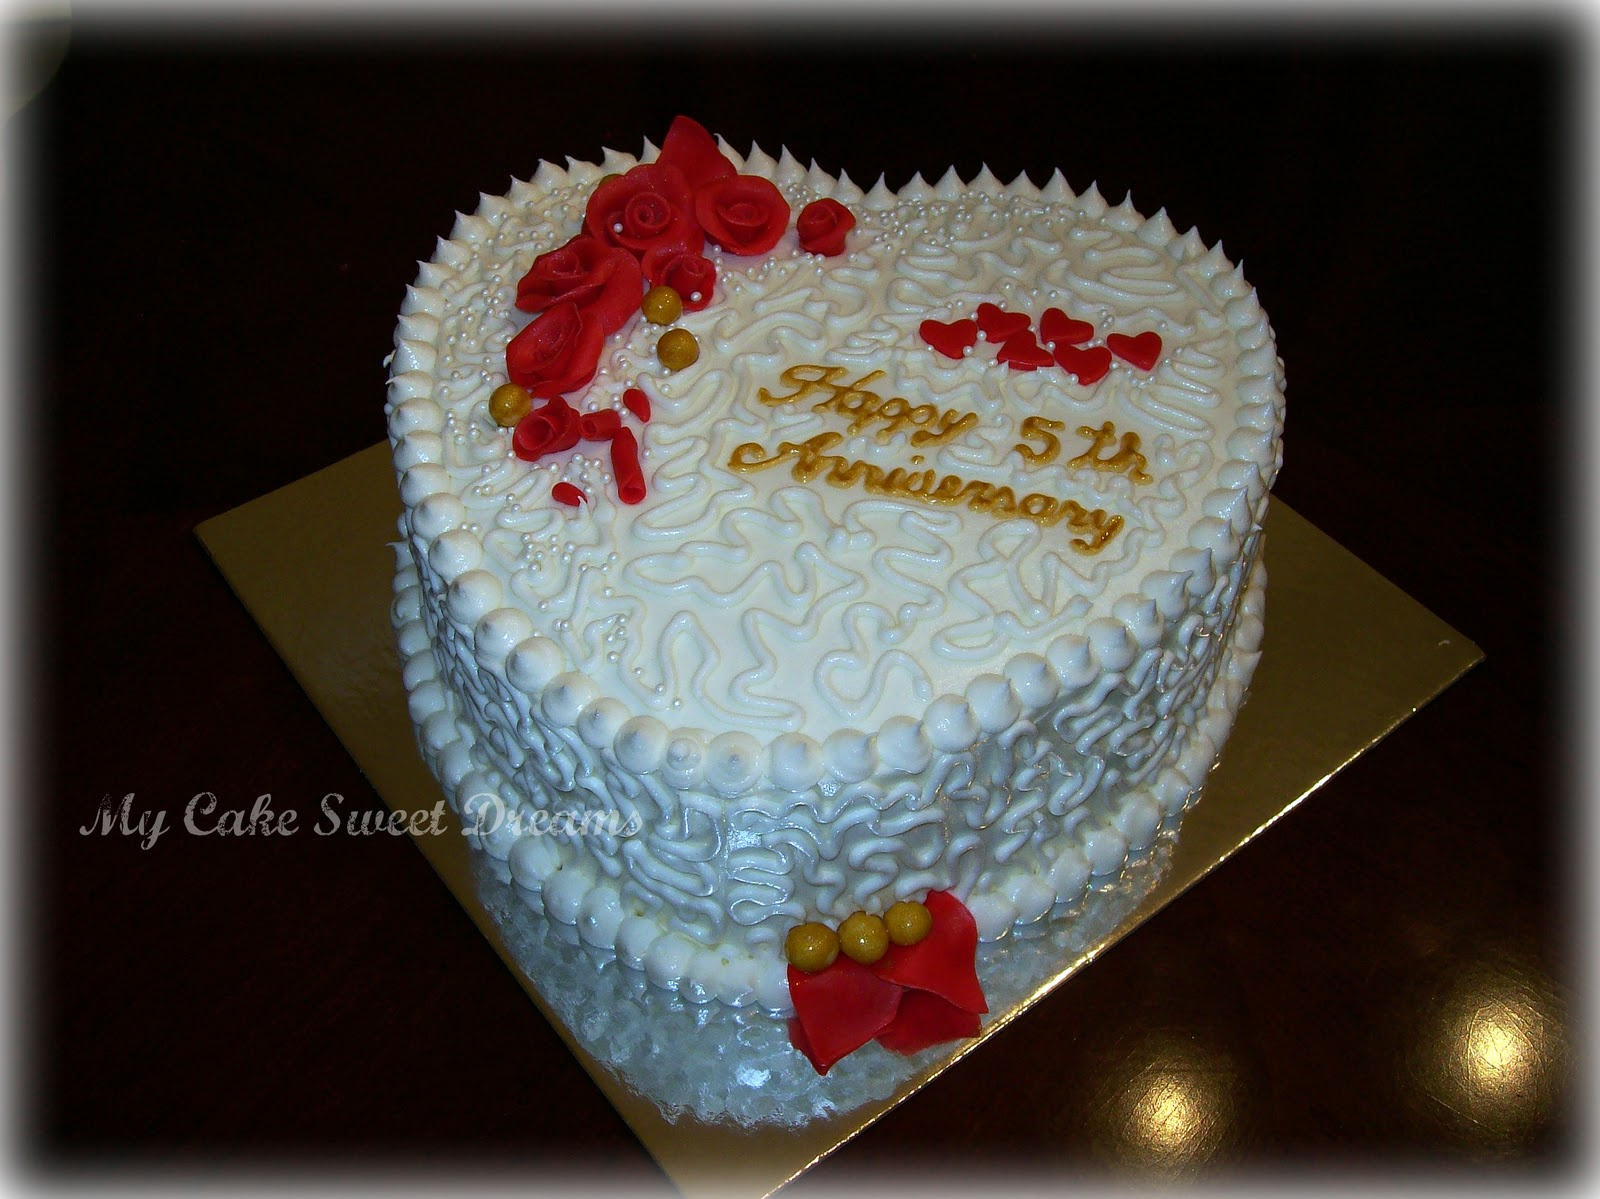 Cake Pictures For Anniversary : My Cake Sweet Dreams: Anniversary Cake